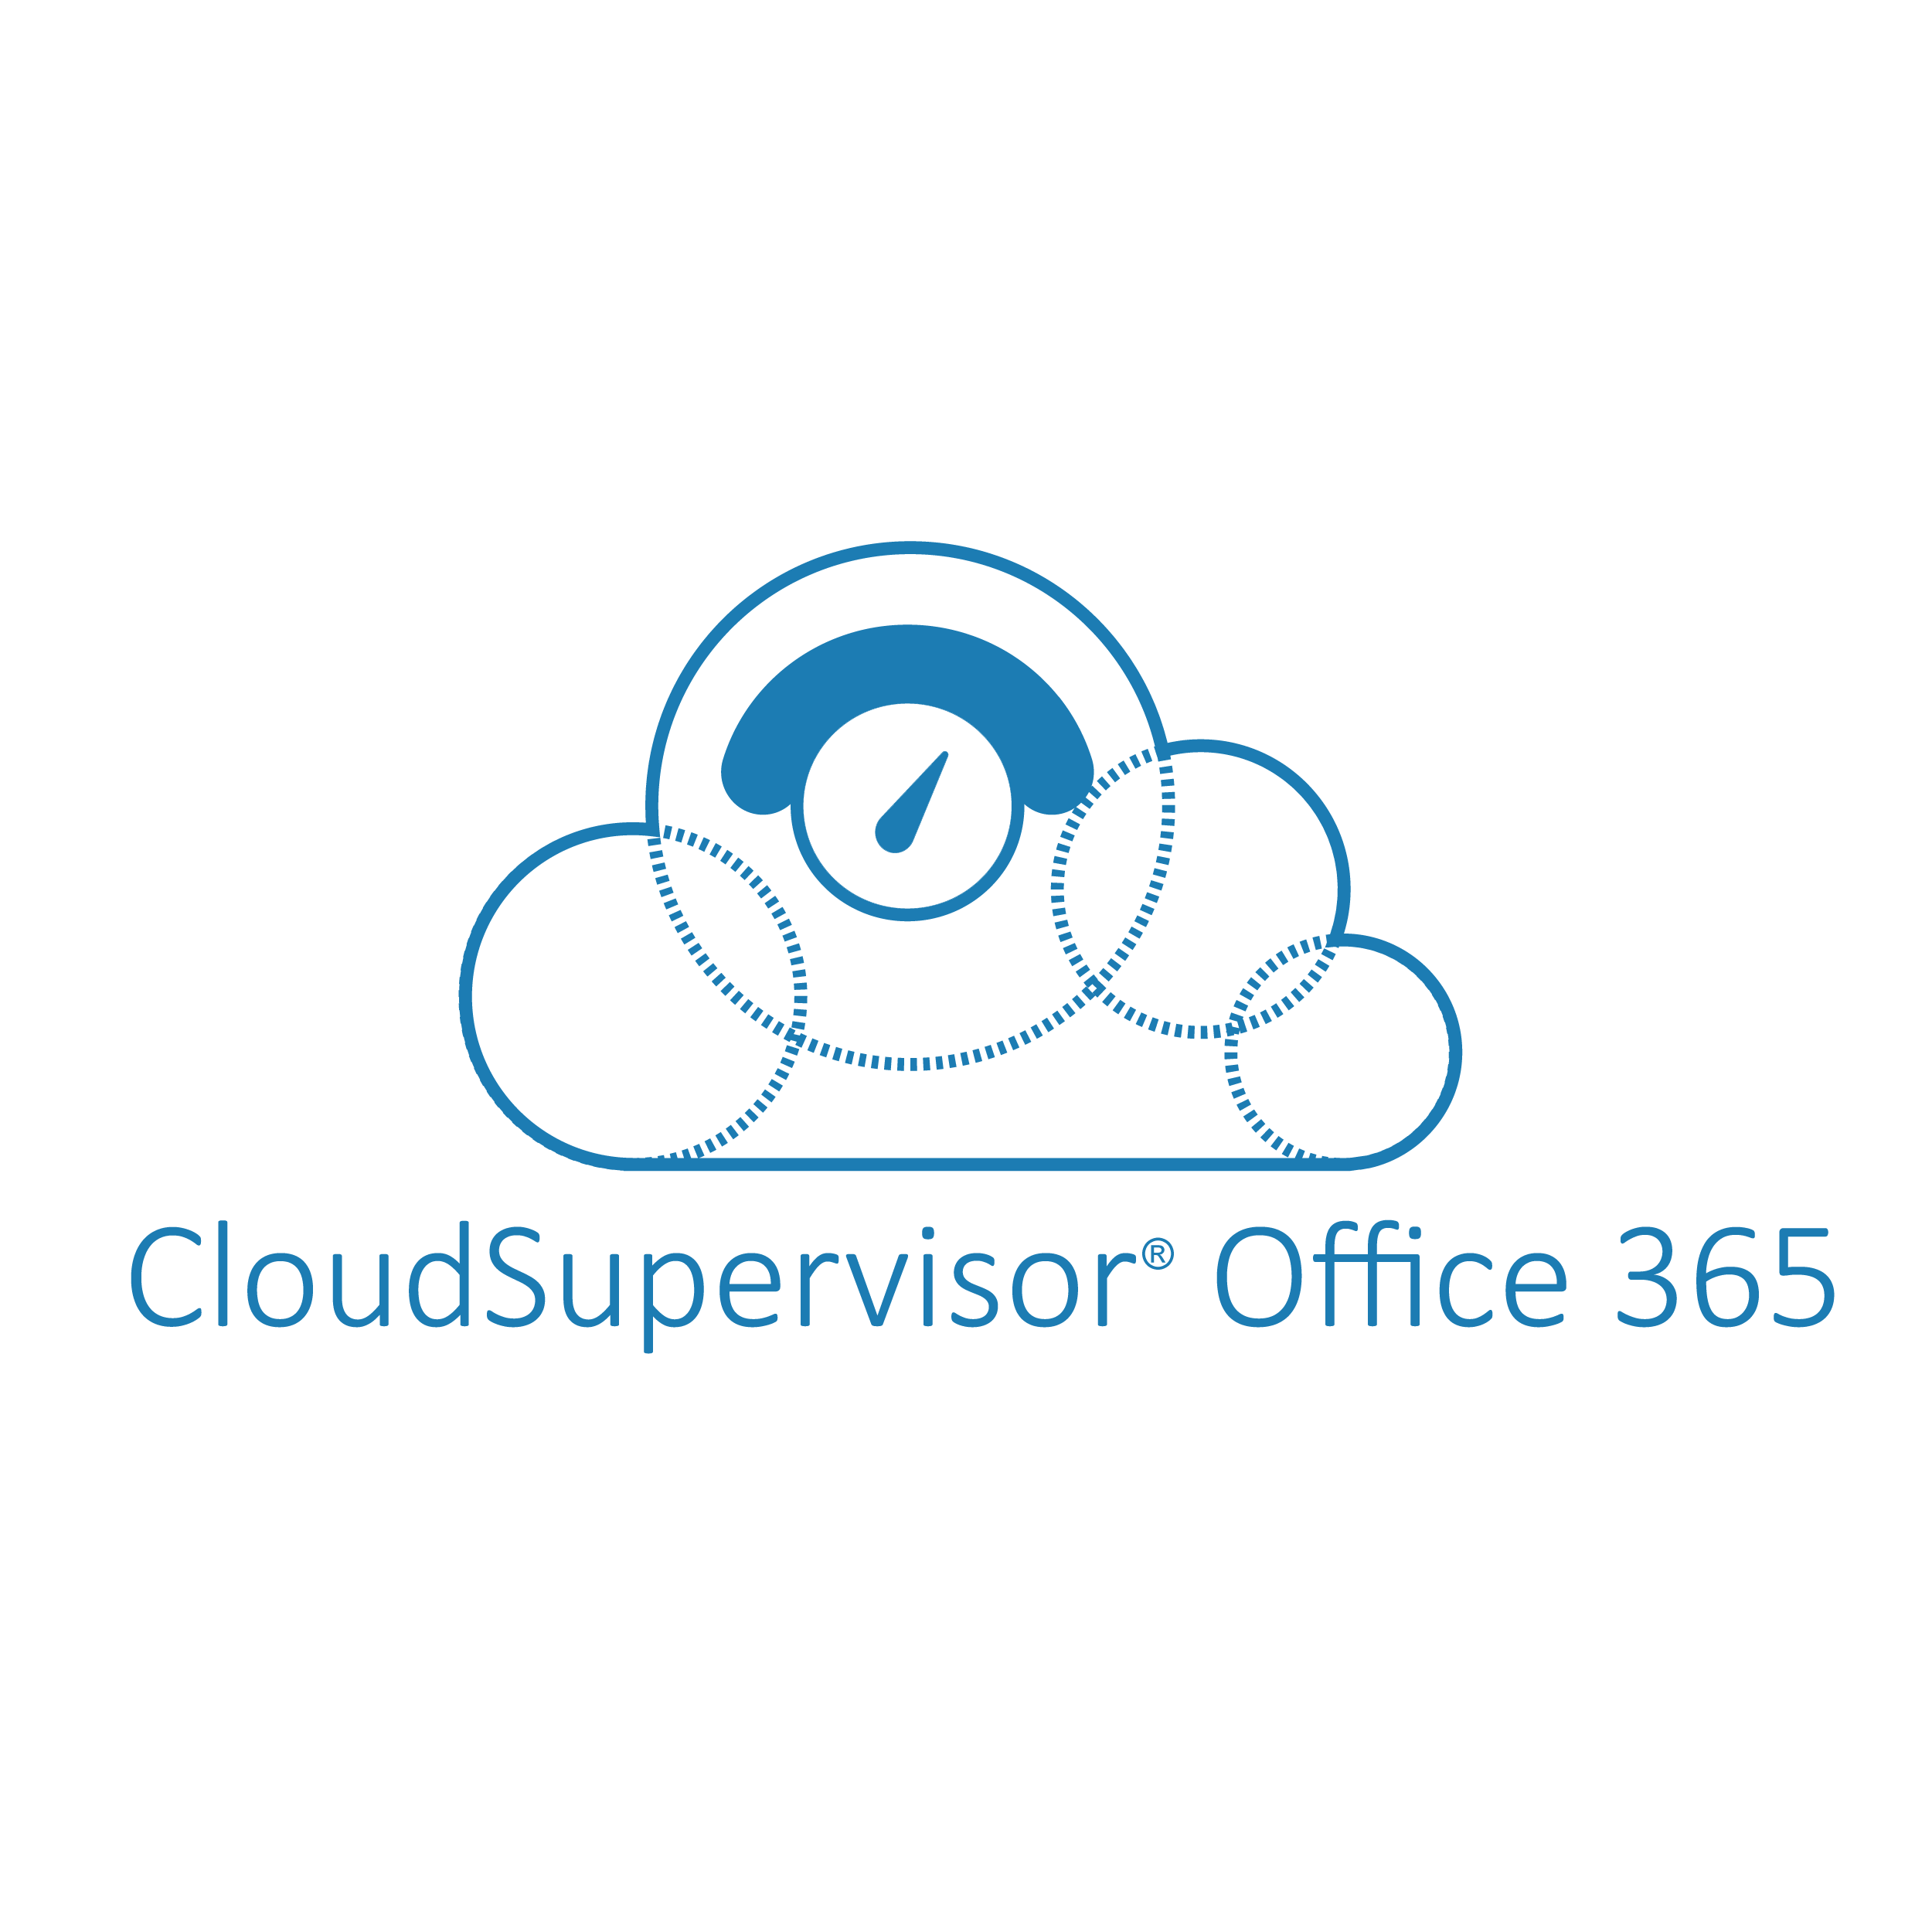 Office 365 Analytical Reporting Tools Office 365 Office Cost Control